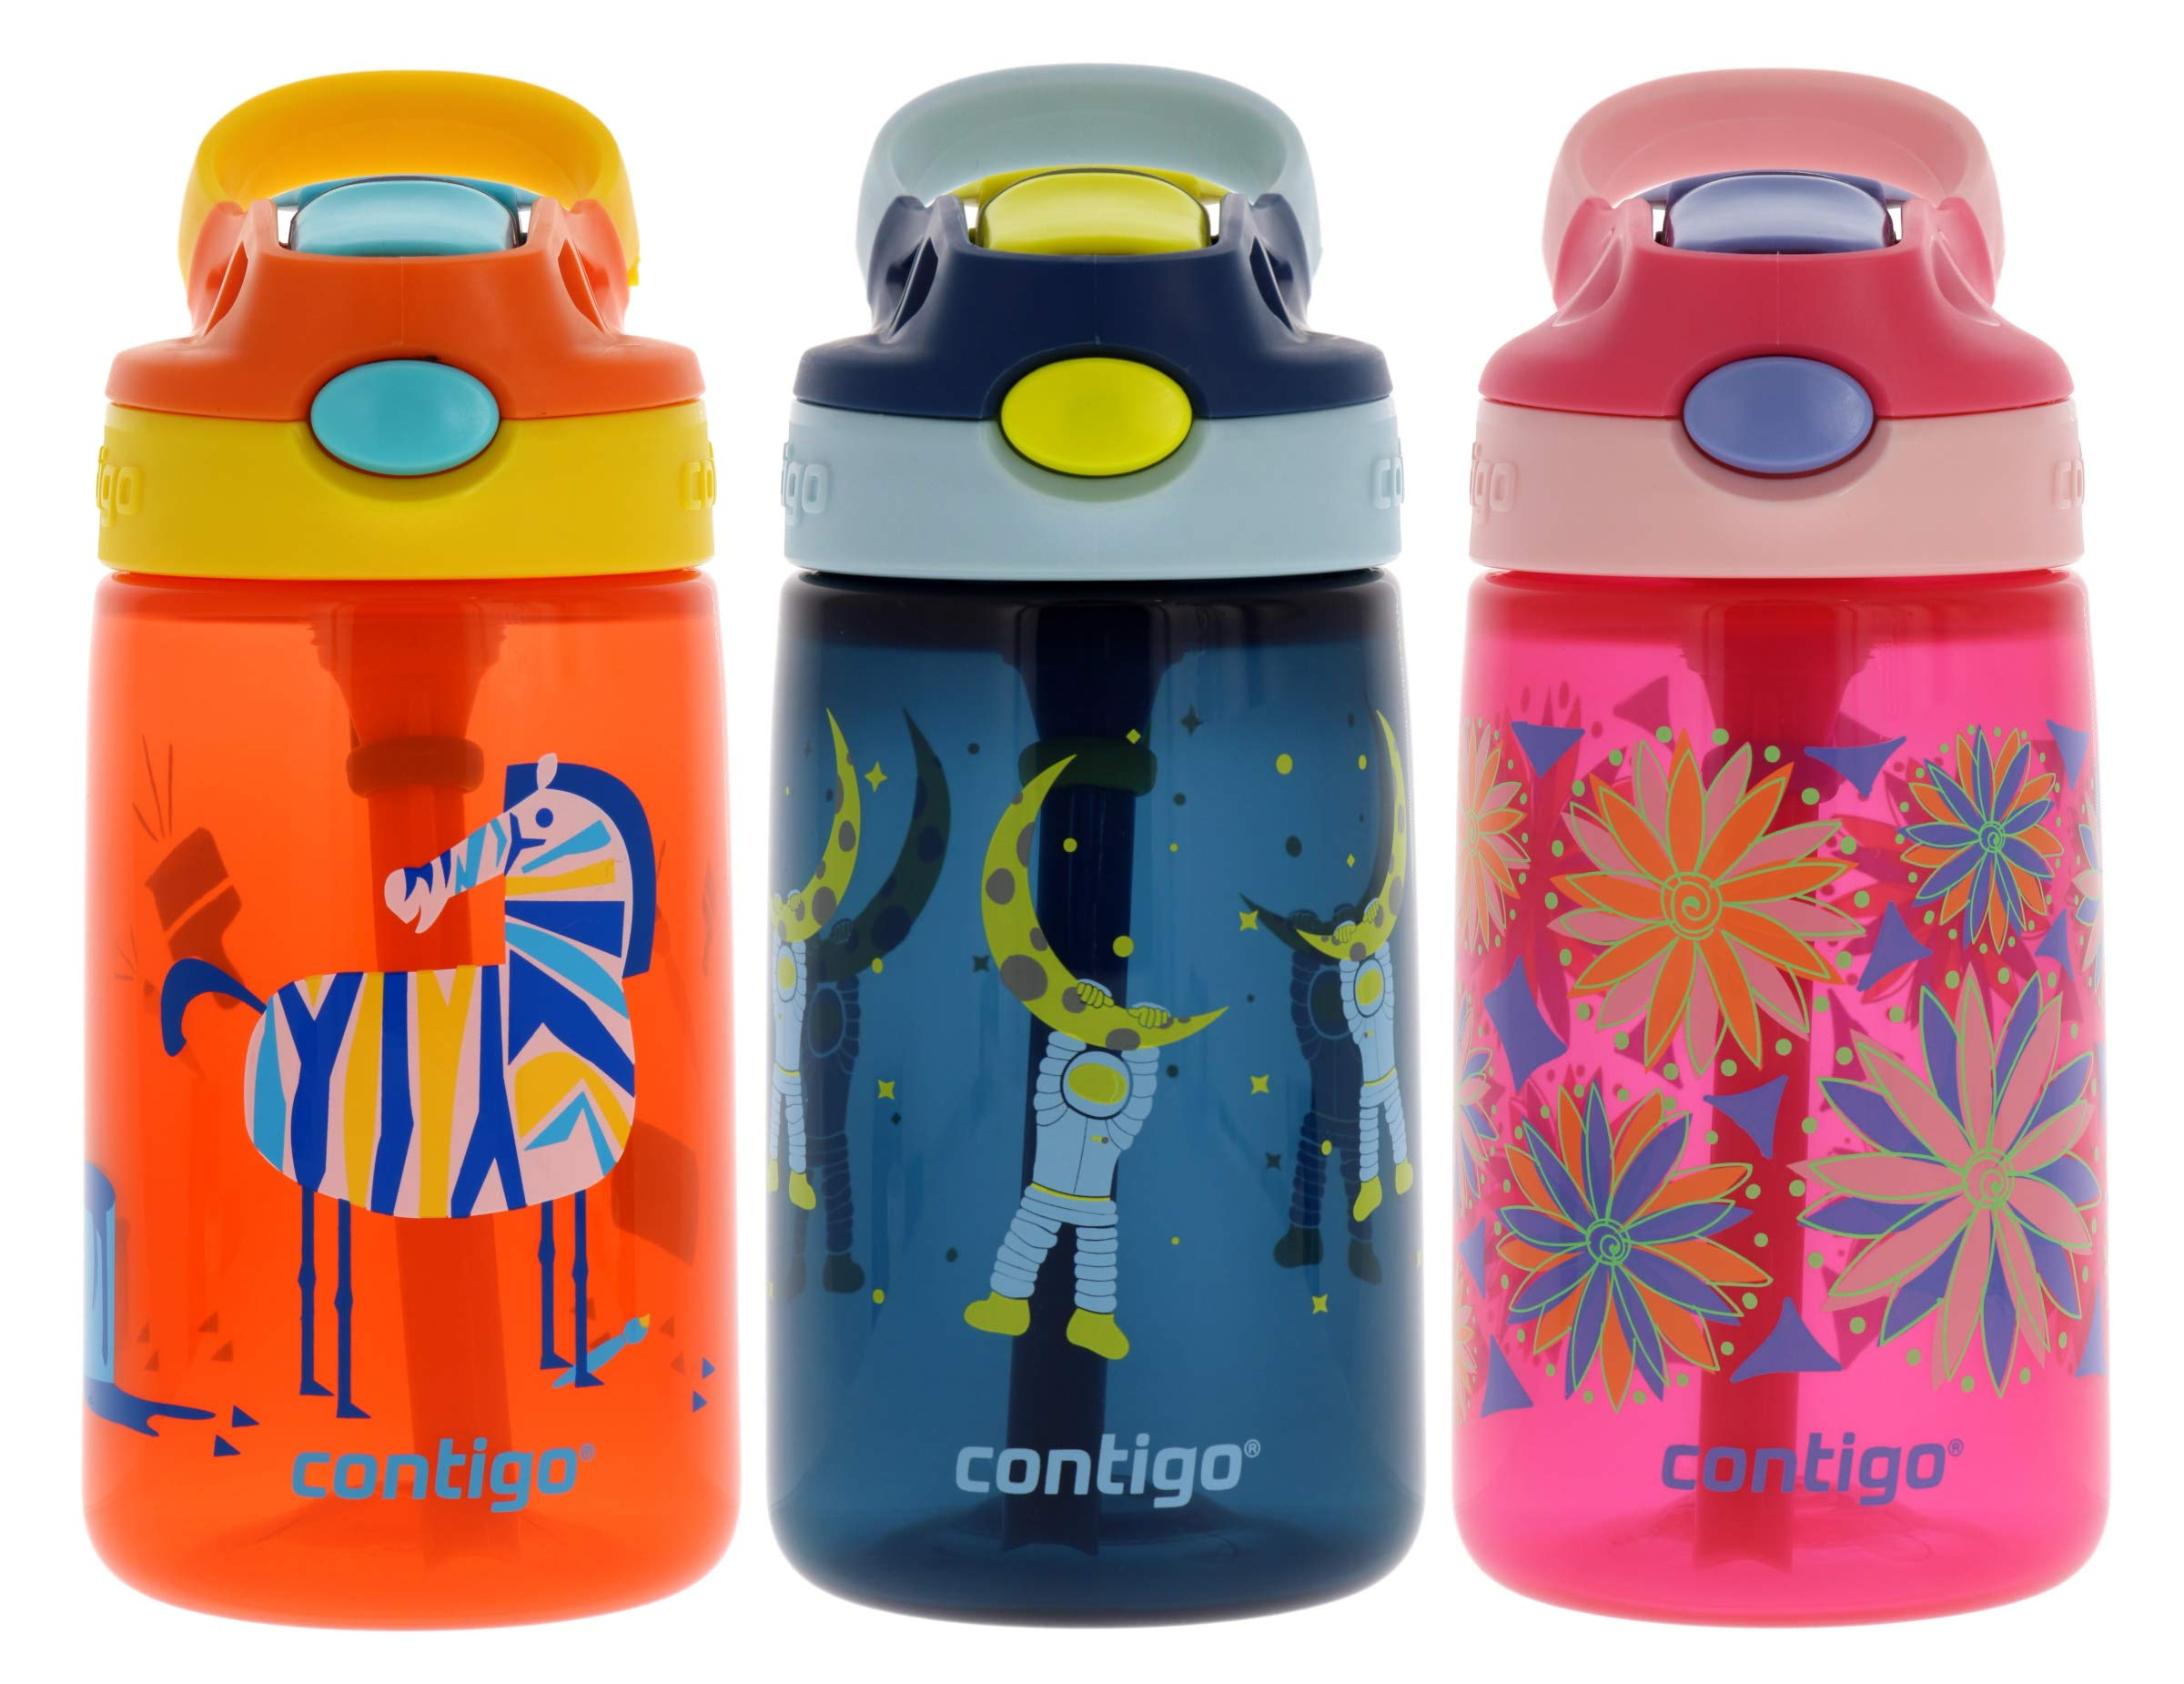 Contigo AUTOSPOUT Kids, 3 Pack - Straw Gizmo Flip, 14oz - Leak and Spill Proof Bottles, Ideal Kids Water Bottle for Home or Travel - Easy-Clean, Dishwasher Safe - Press Button For Pop Up Straw by Contigo